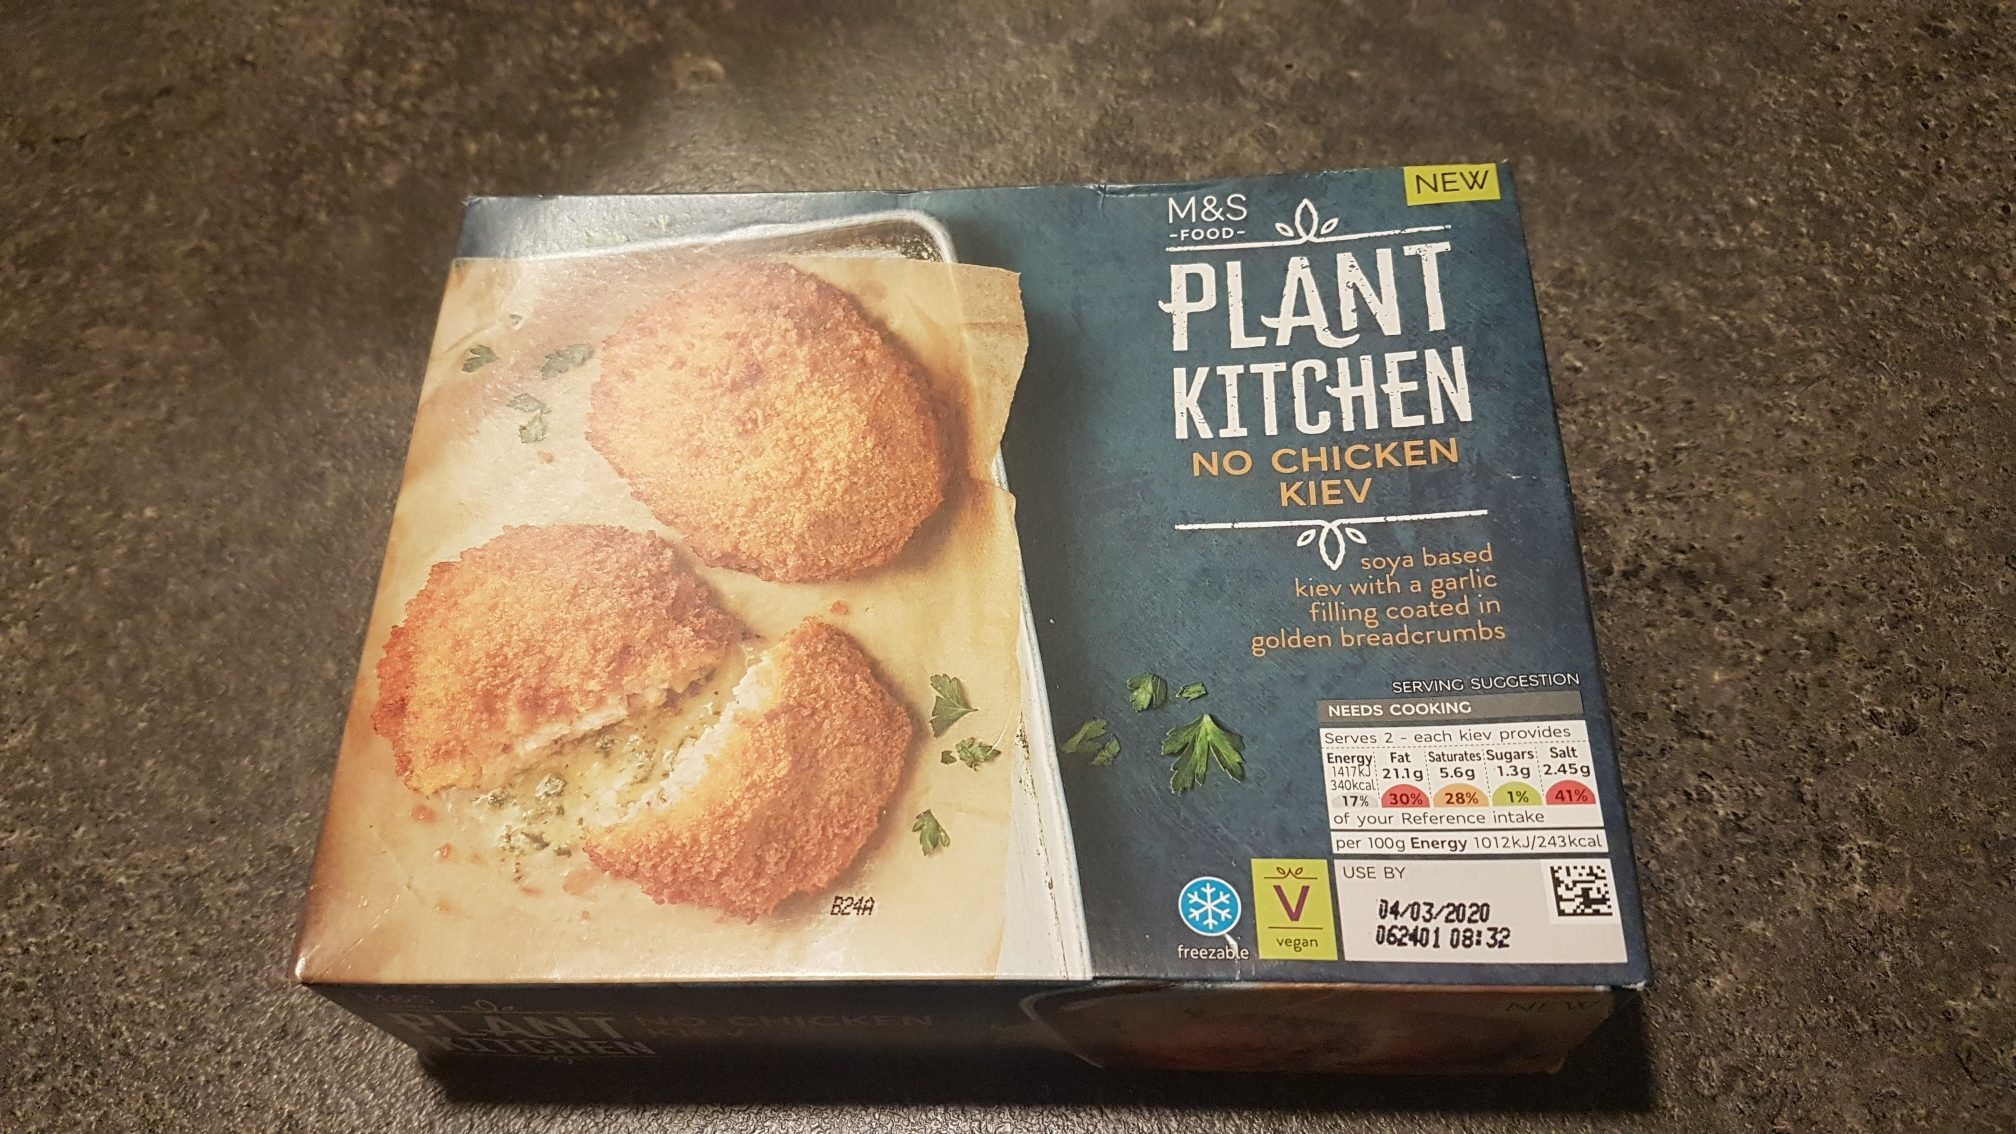 No chicken vegan chicken kiev review